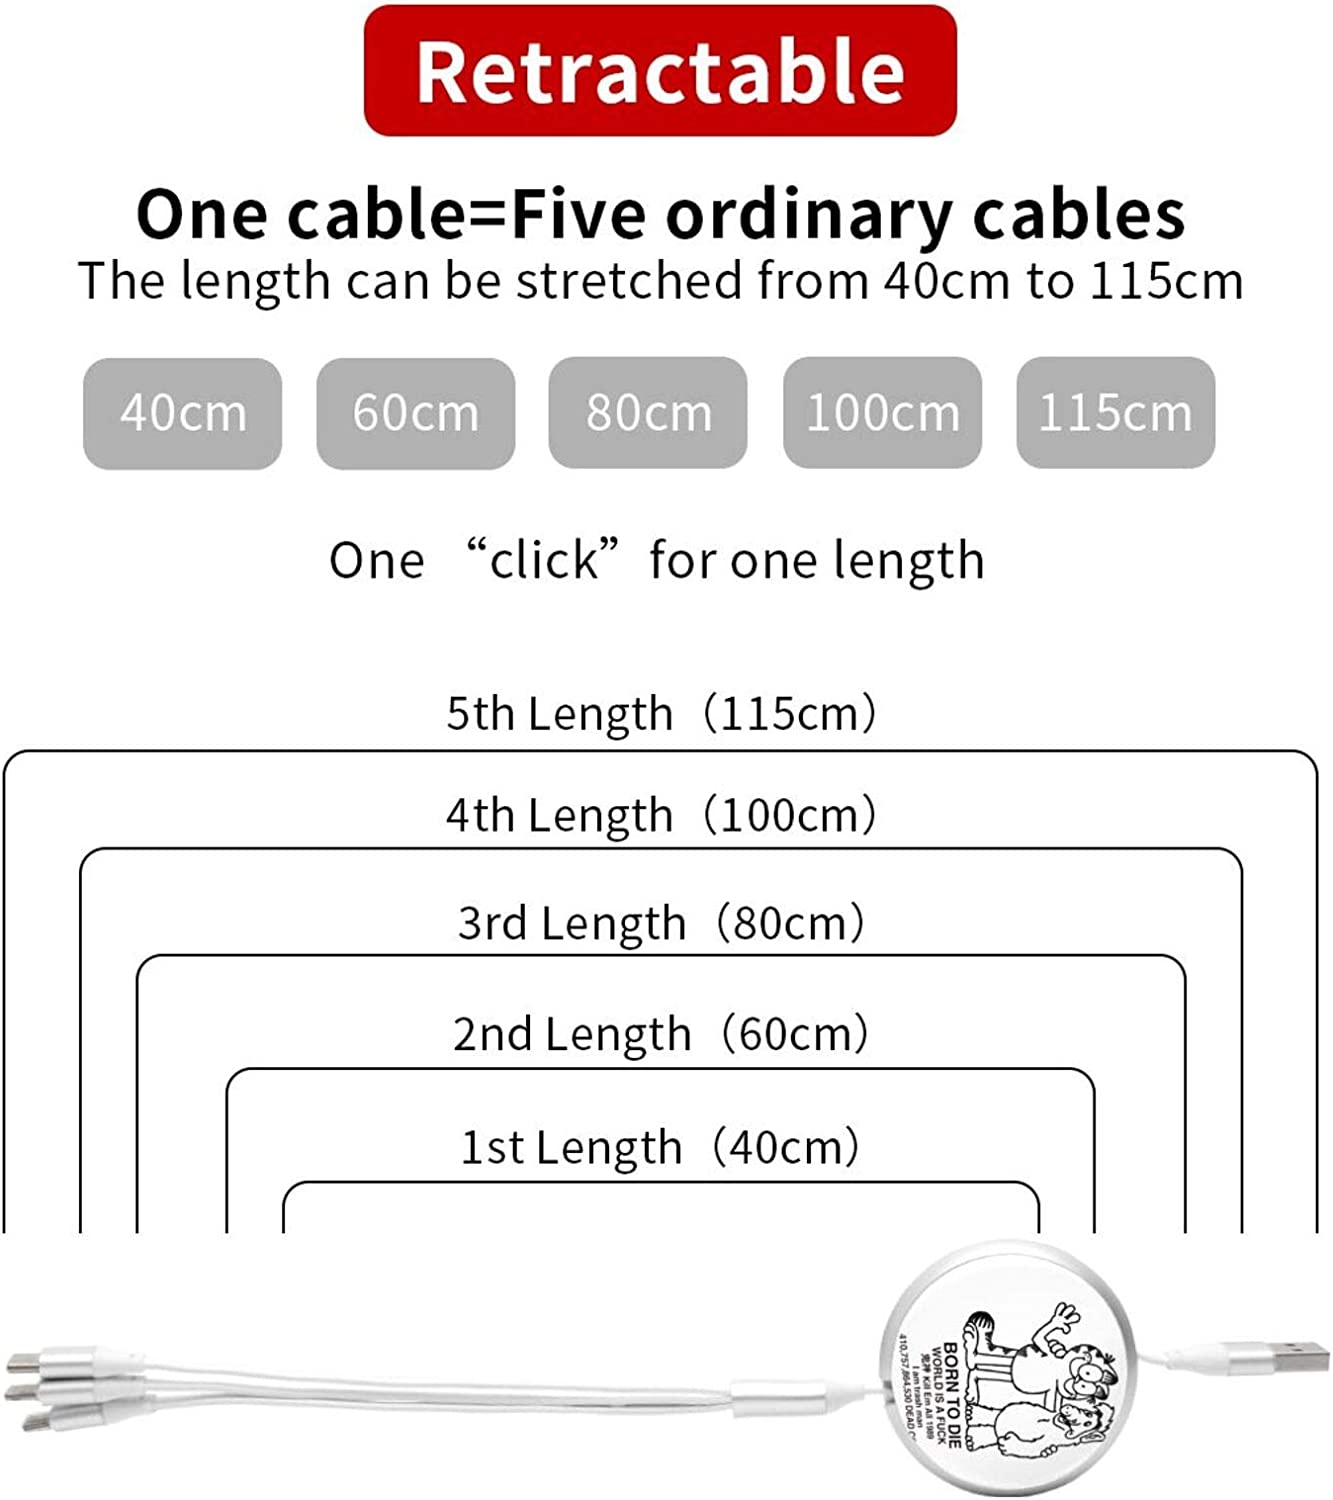 Multi Charging Cable Portable 3 in 1 Born to GARF USB Cable USB Power Cords for Cell Phone Tablets and More Devices Charging